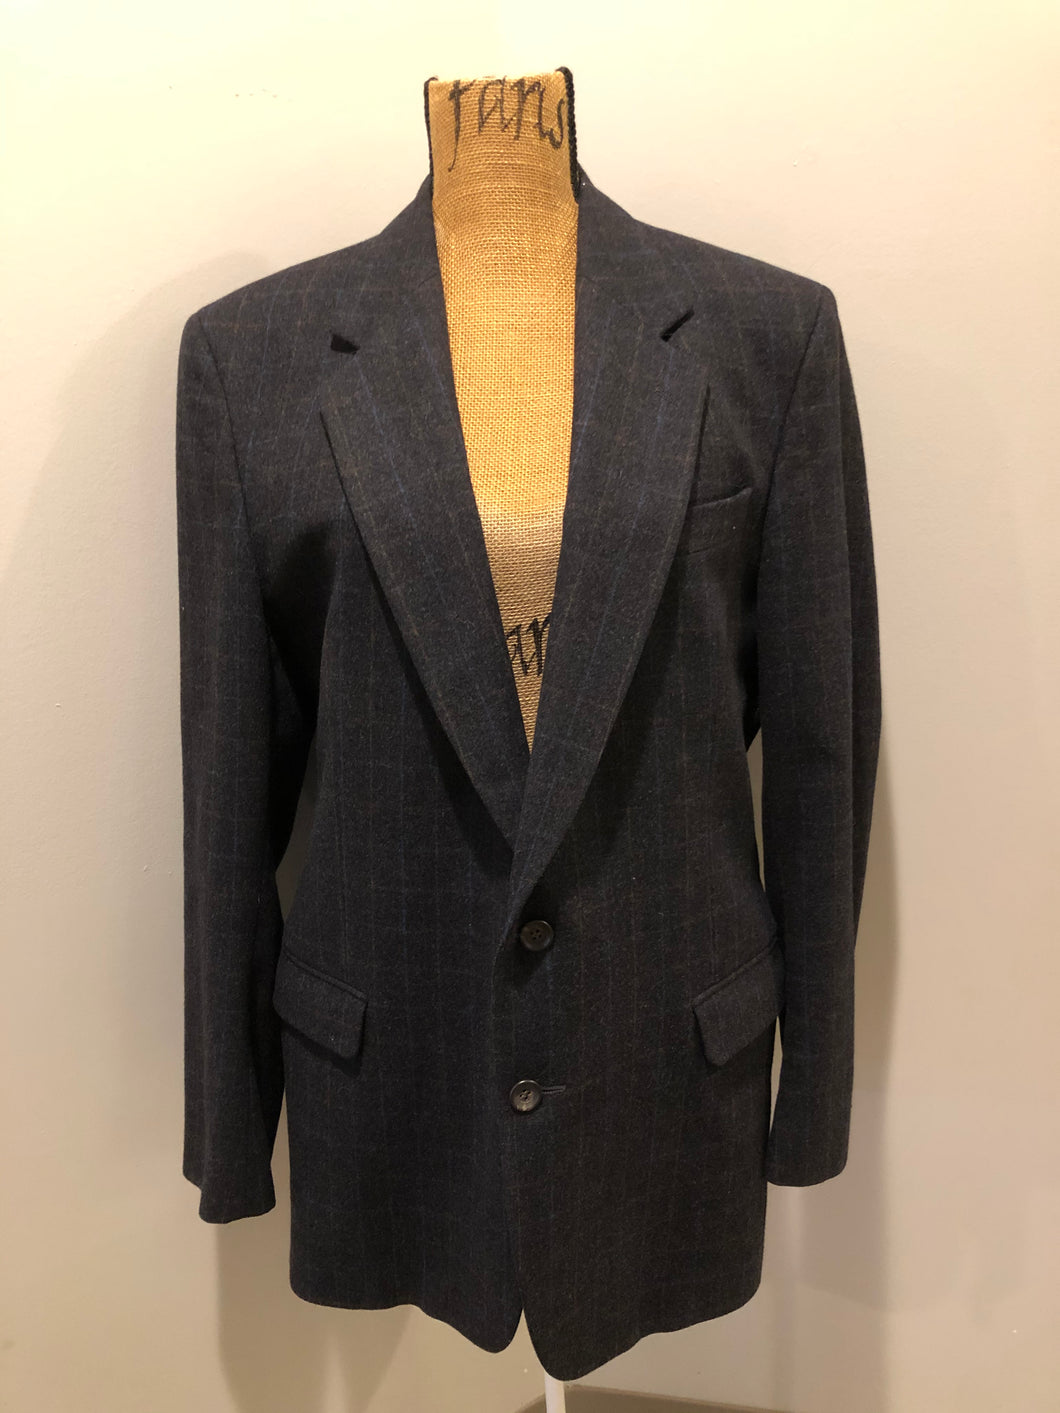 Chaps by Ralph Lauren slate grey with blue and red subtle stripe 100% wool jacket. This jacket is a two button, notch lapel with two flap pockets, a breast pocket and three inside pockets. Made in Canada.